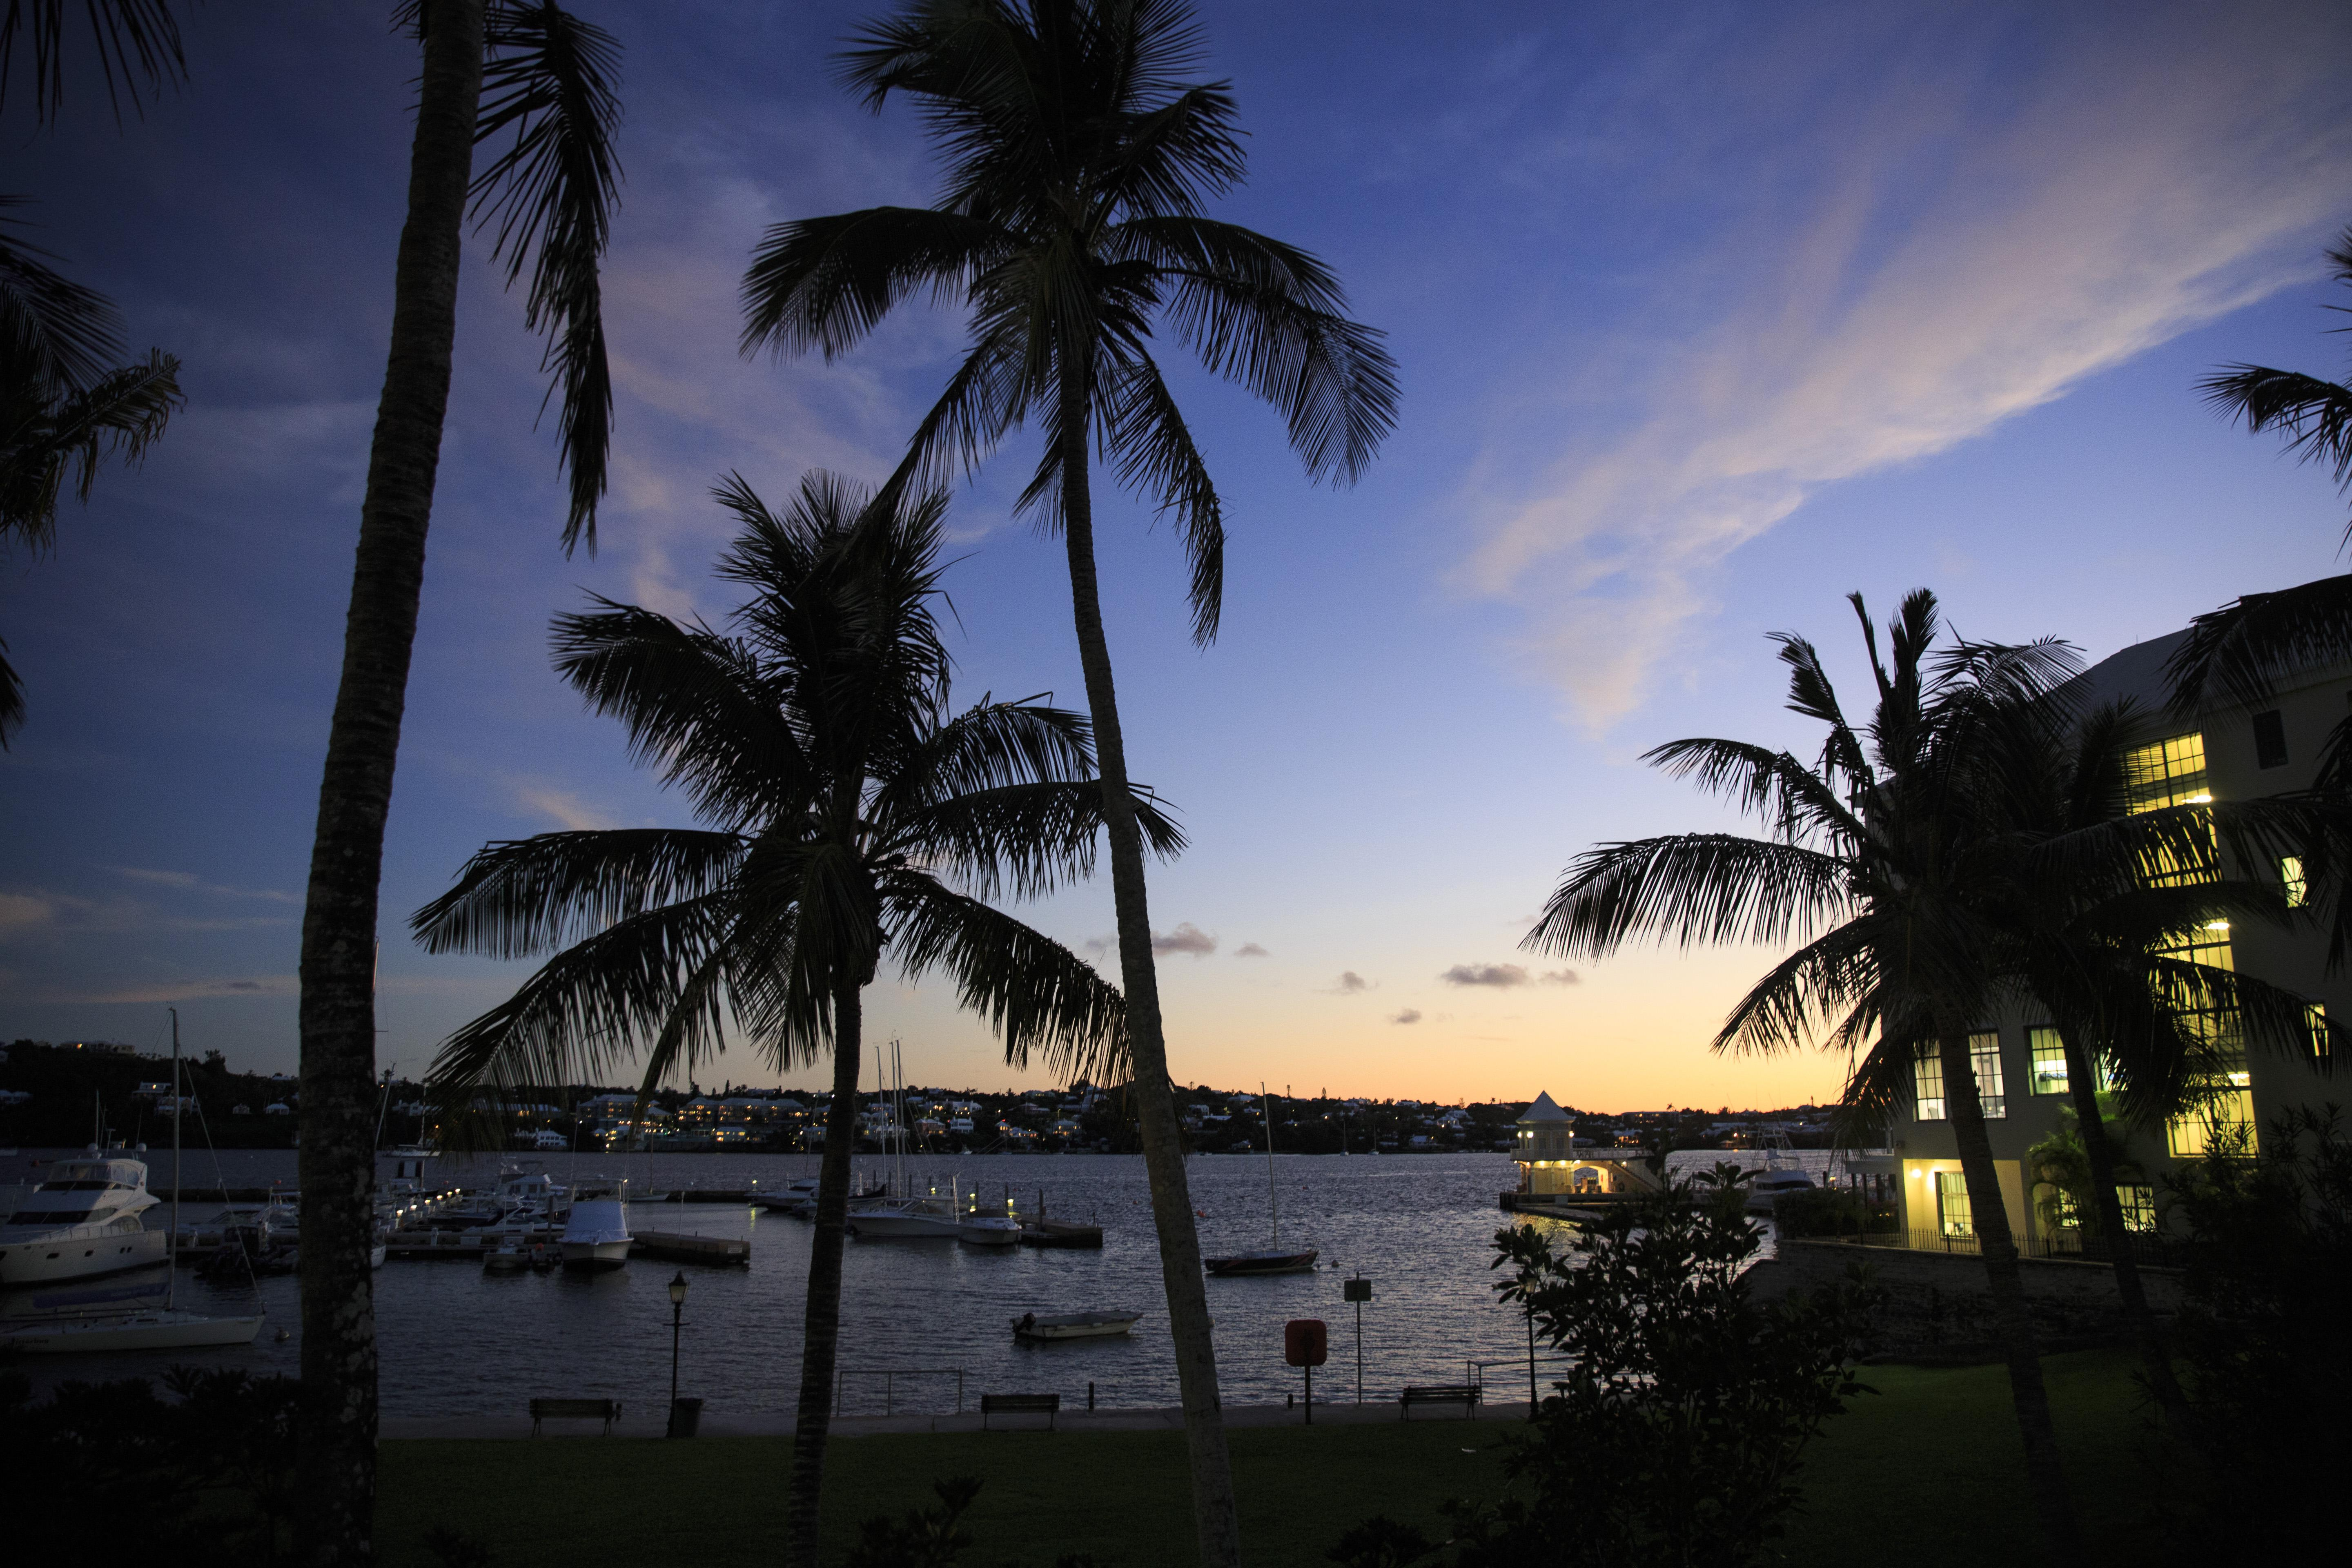 HAMILTON, BERMUDA - NOVEMBER 8: A view of Hamilton Harbour at dusk, November 8, 2017 in Hamilton, Bermuda. In a series of leaks made public by the International Consortium of Investigative Journalists, the Paradise Papers shed light on the trillions of dollars that move through offshore tax havens. (Photo by Drew Angerer/Getty Images)